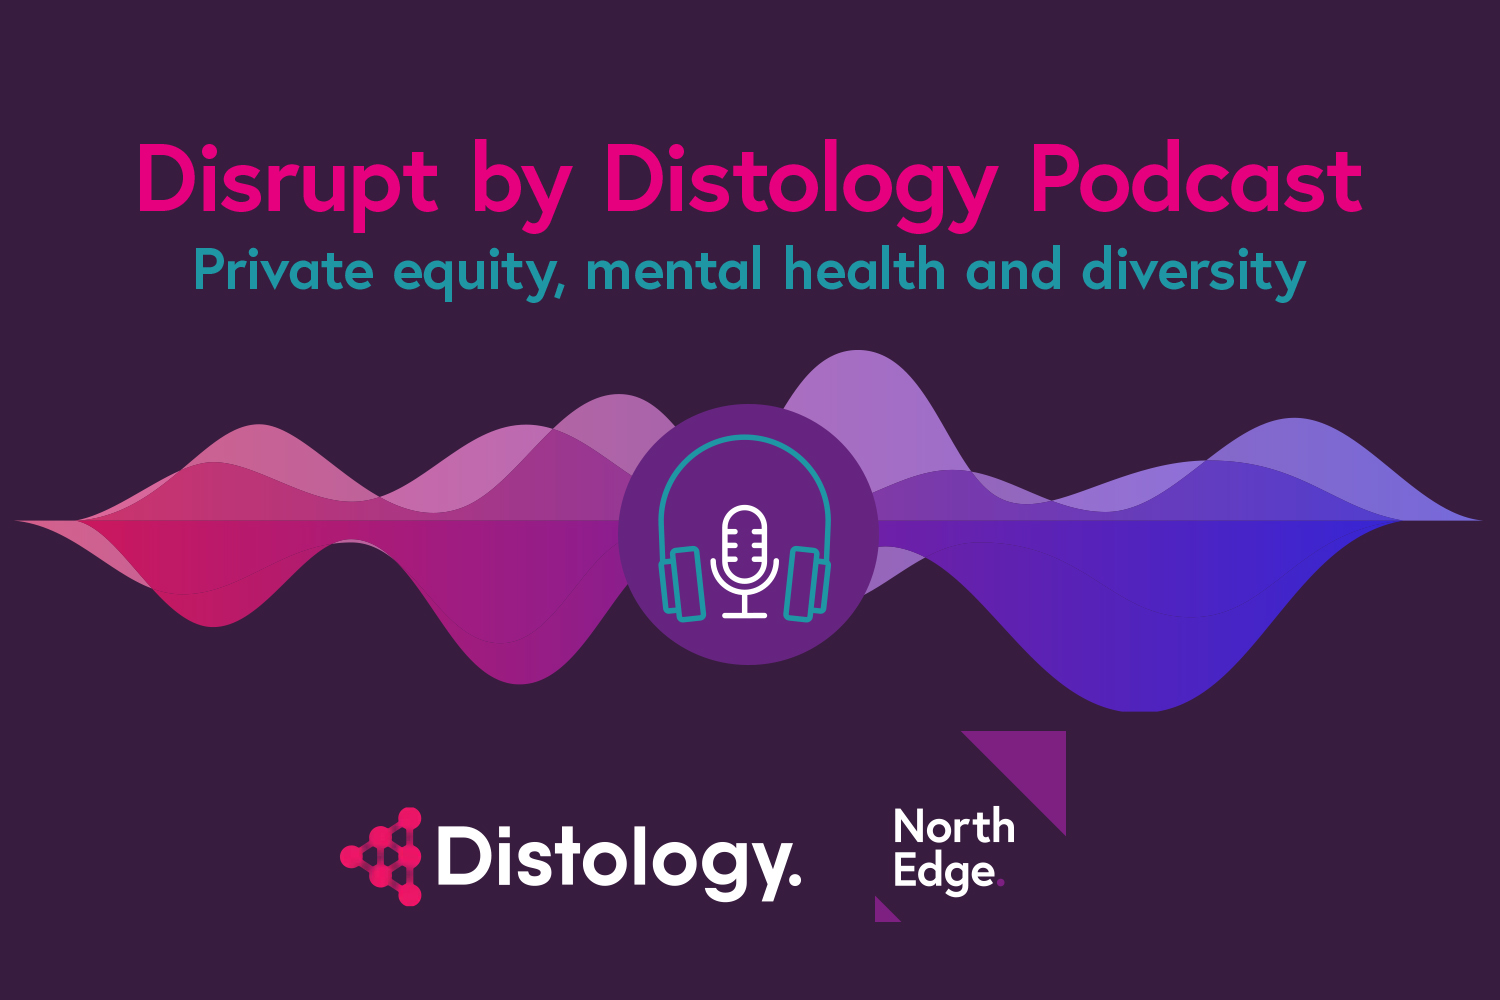 NorthEdge team up with Distology for latest 'Disrupt' podcast